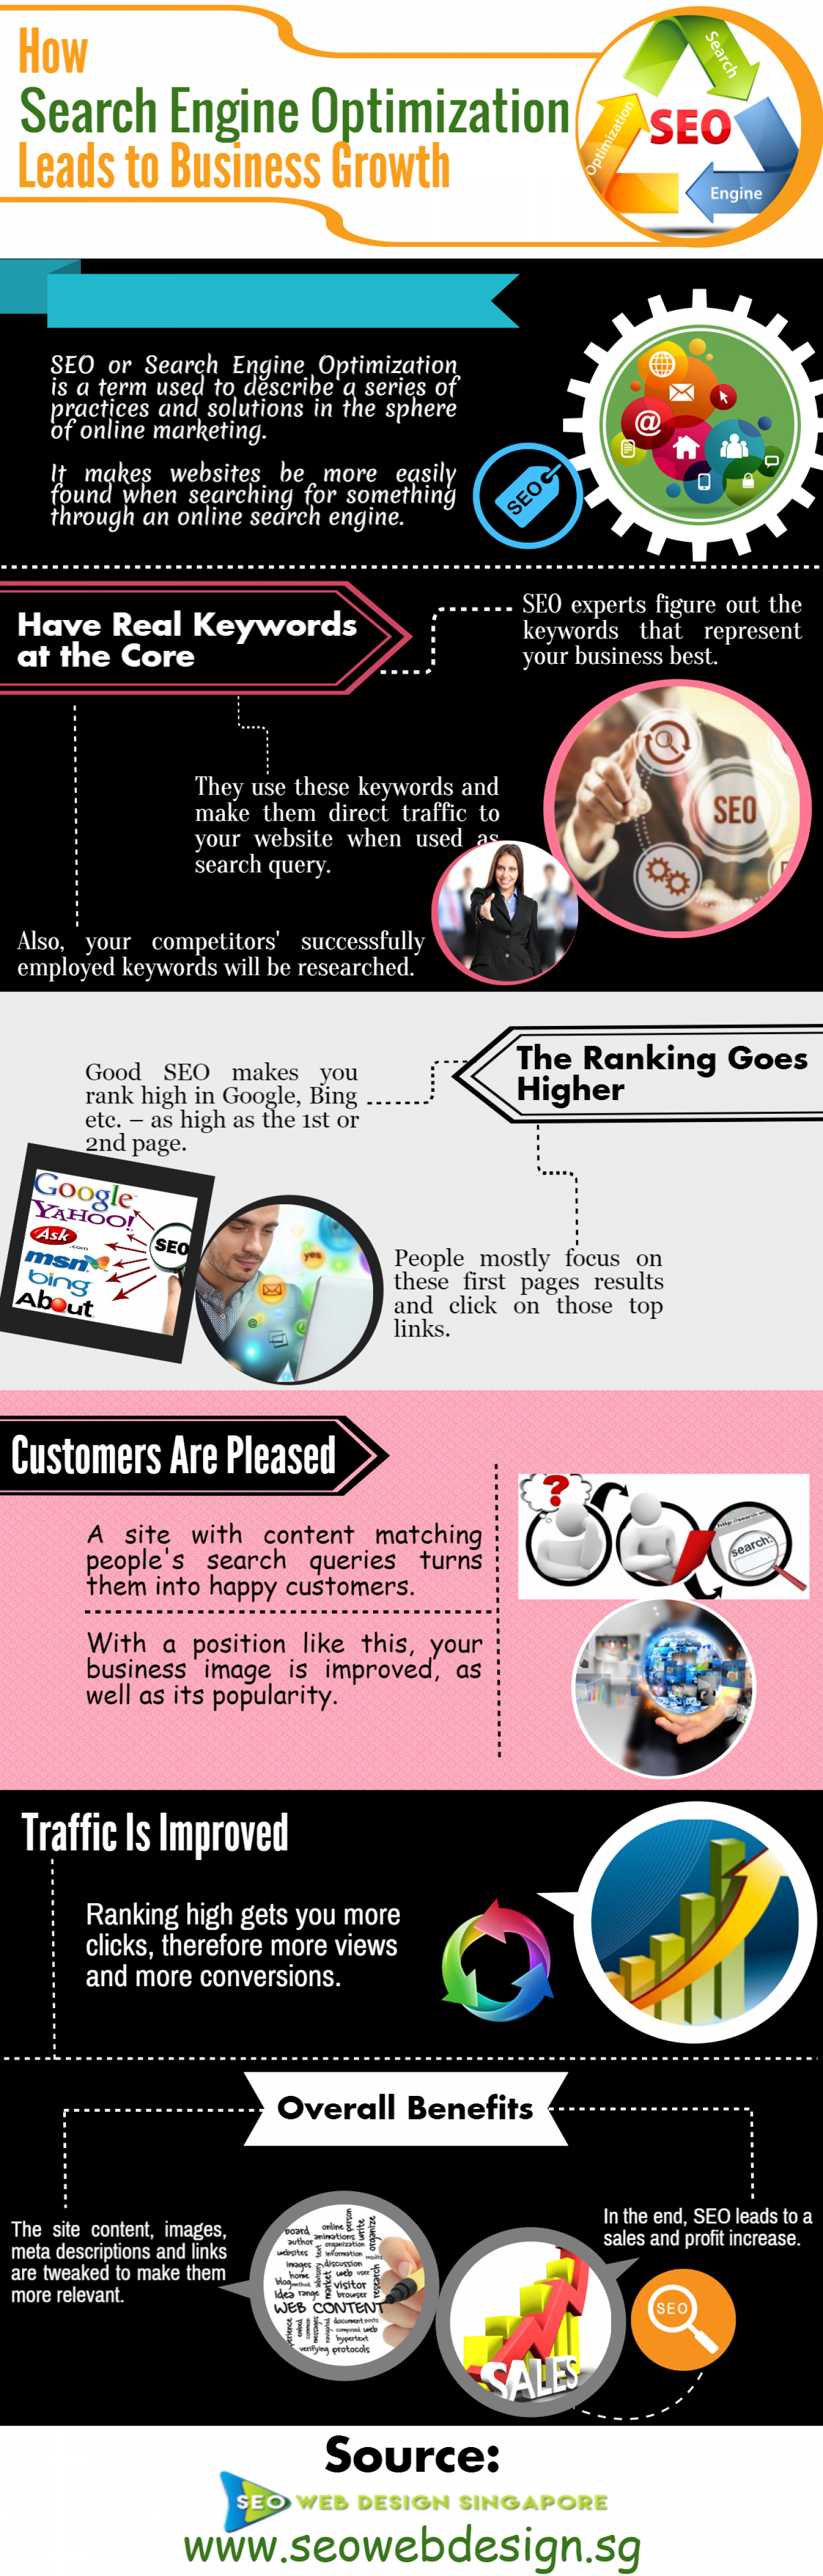 How Search Engine Optimization Leads to Business Growth Infographic